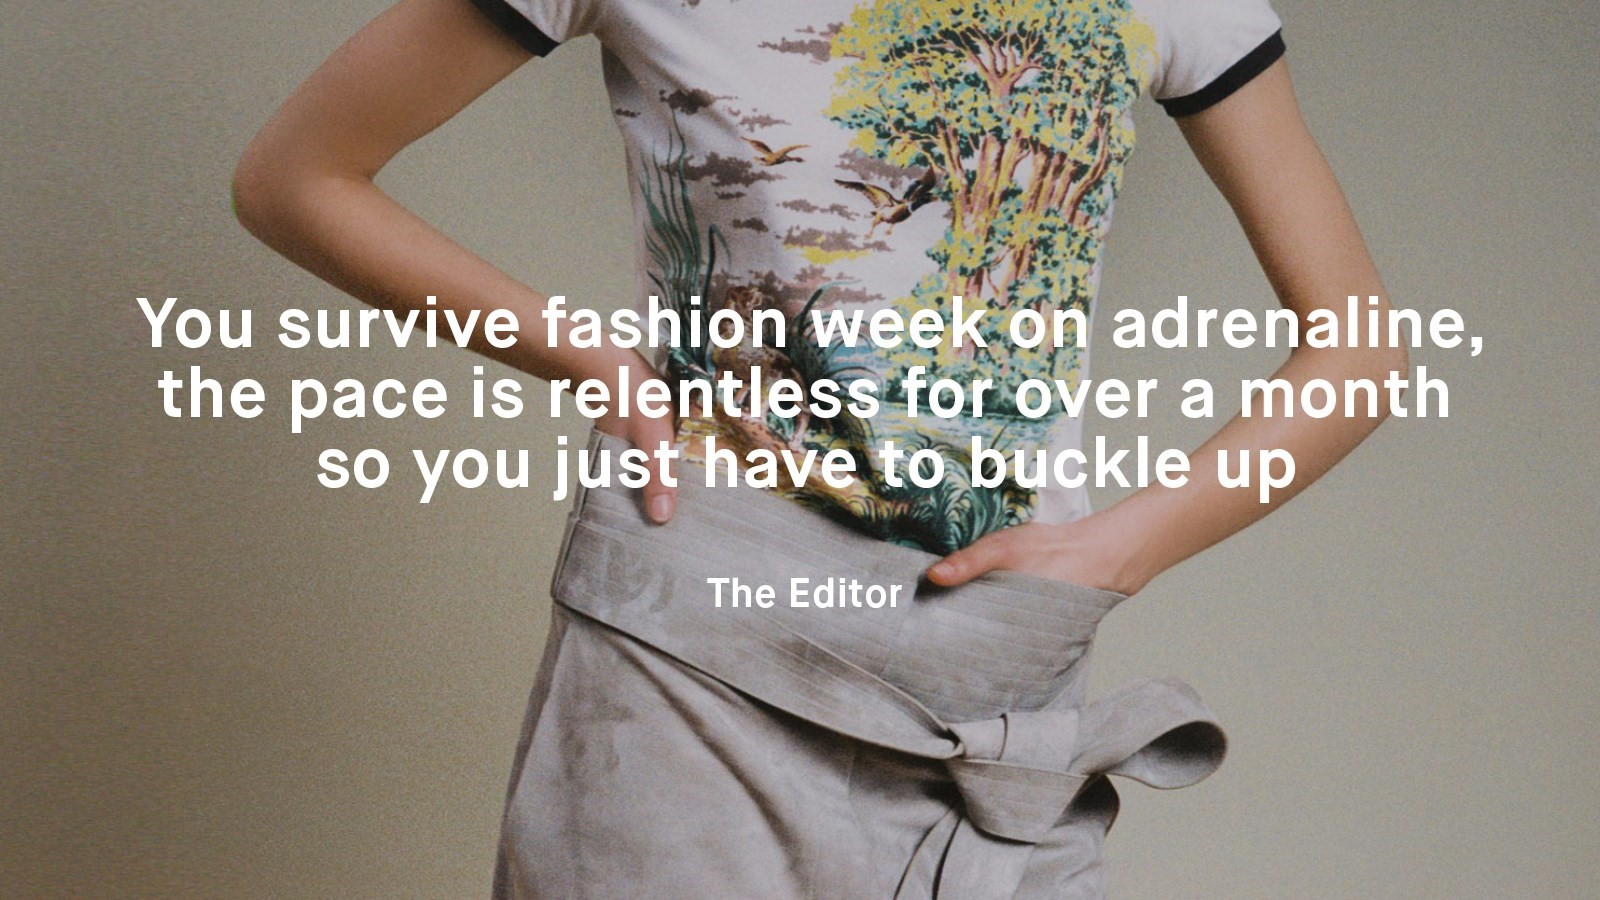 Jawbone wearable tech fashion week experiment quote